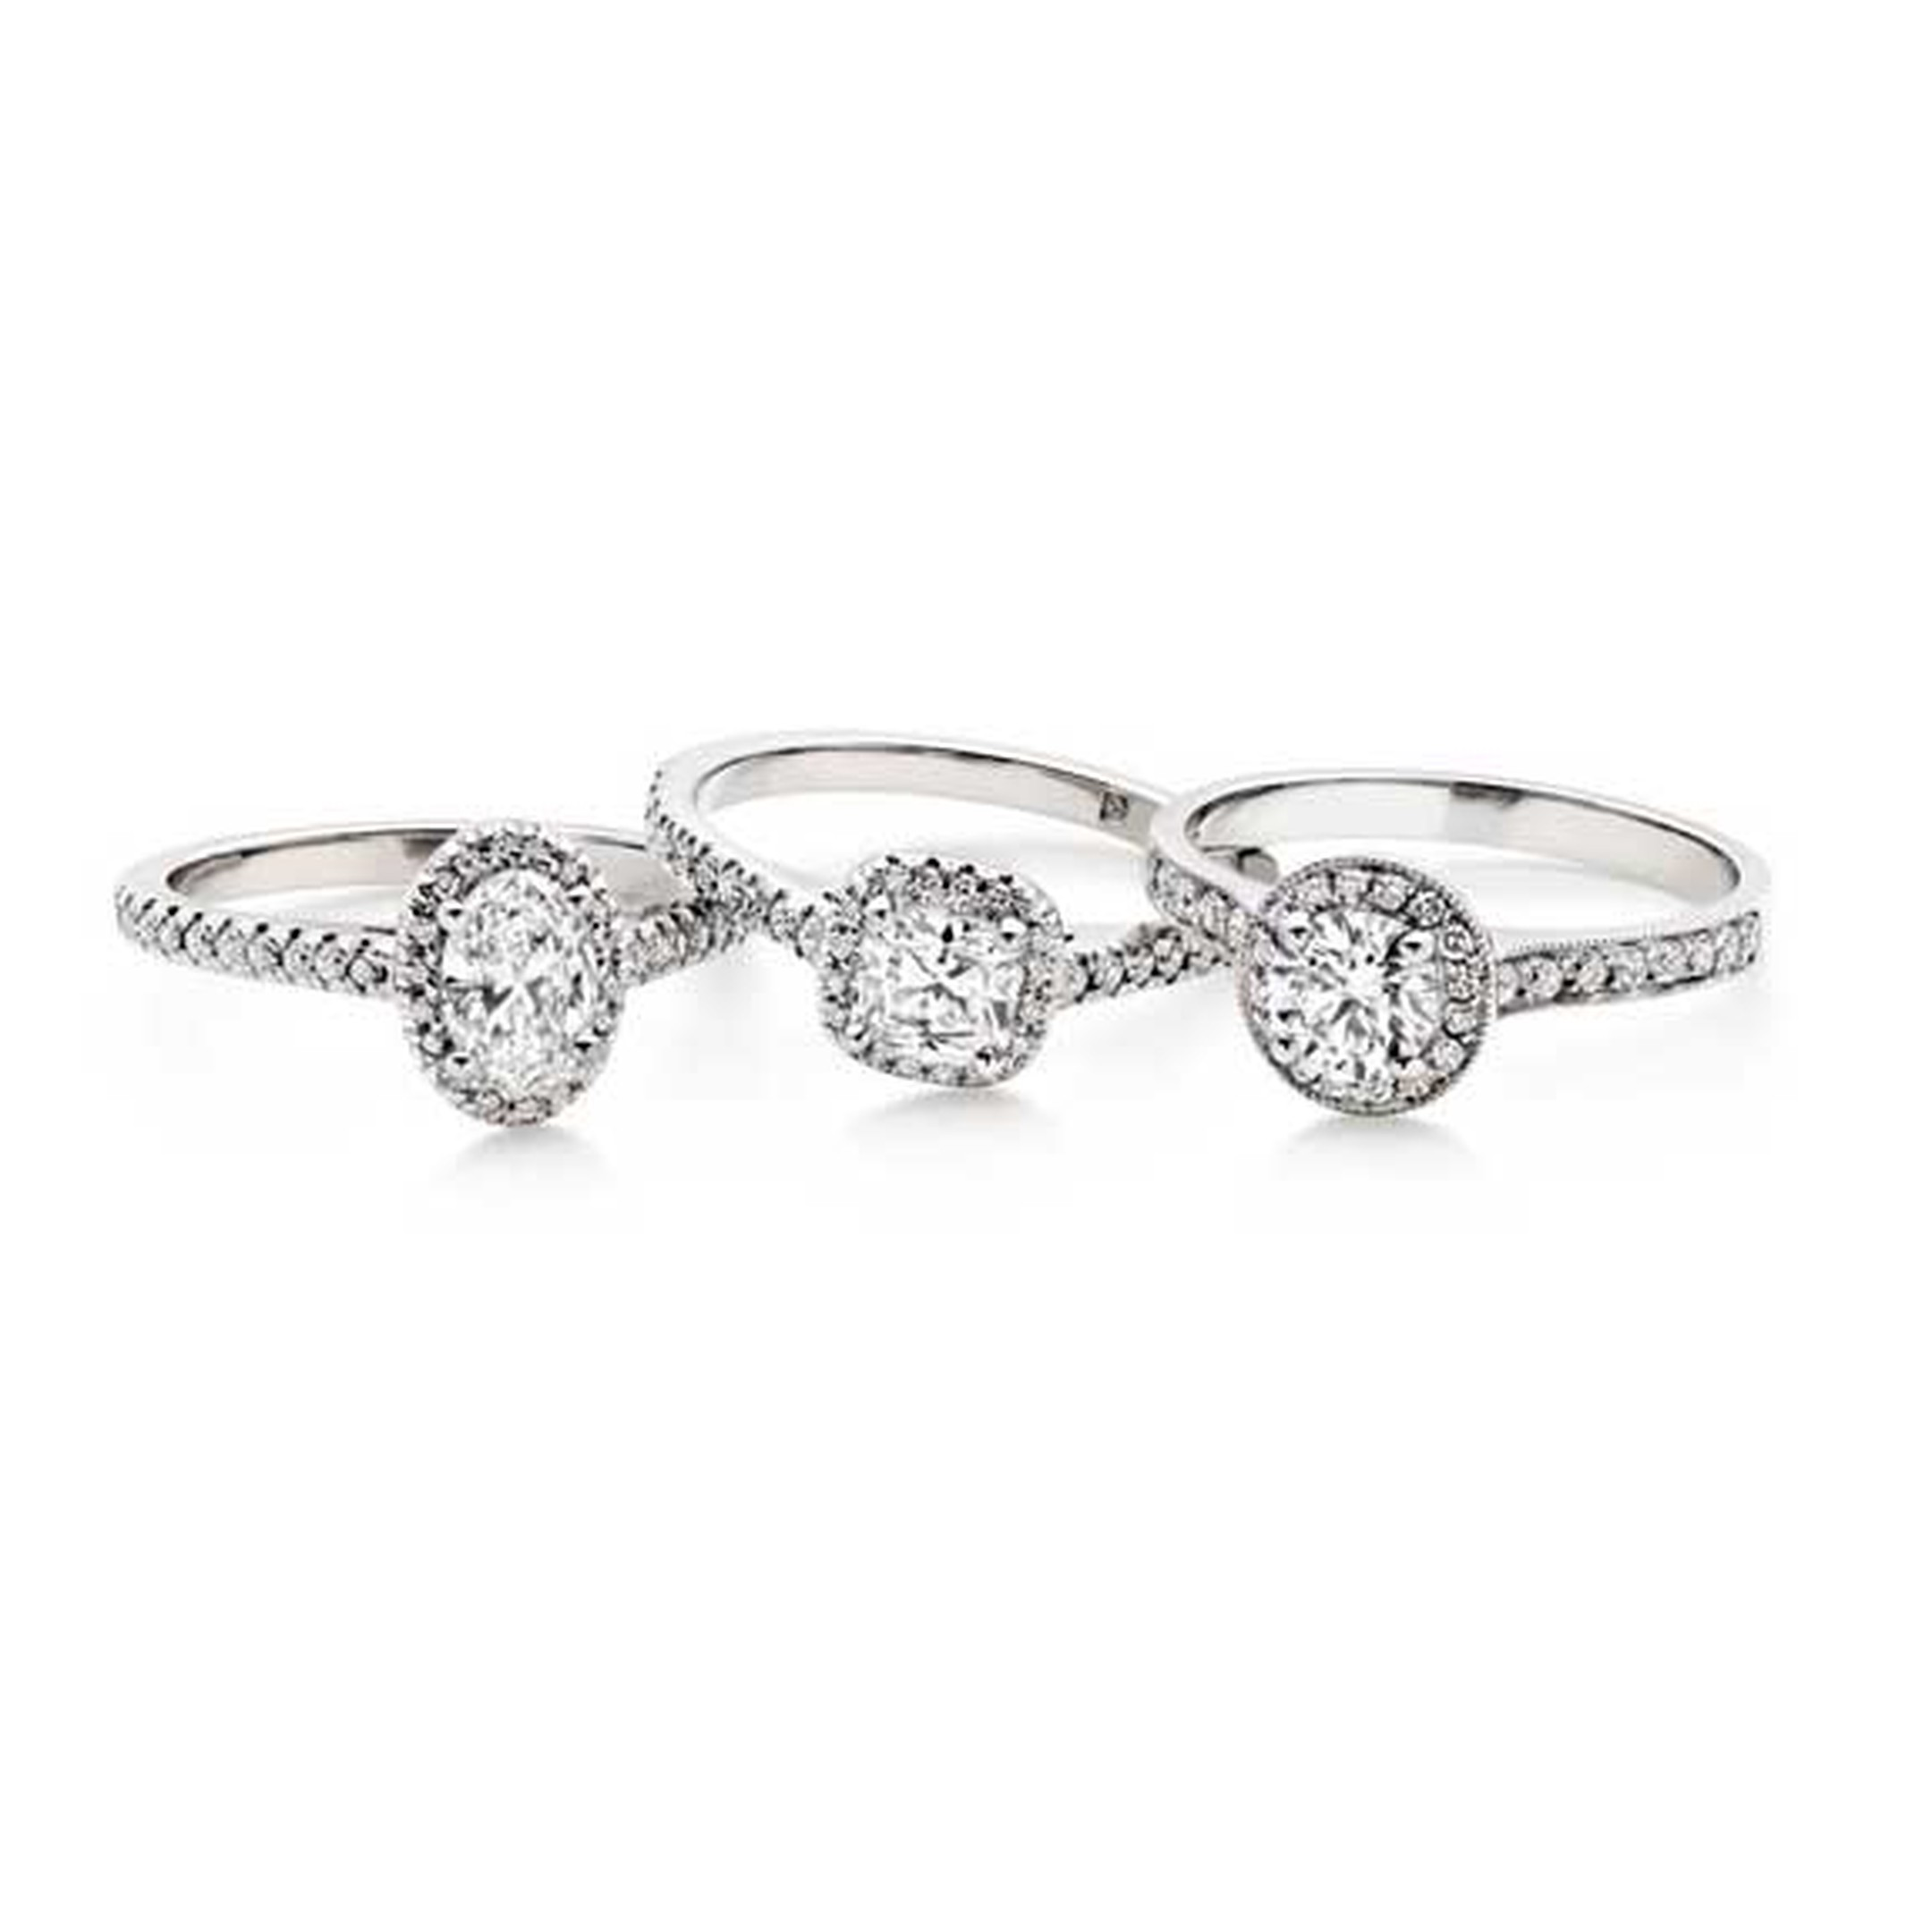 Ingle Rhode Ethical Rings Brand Image